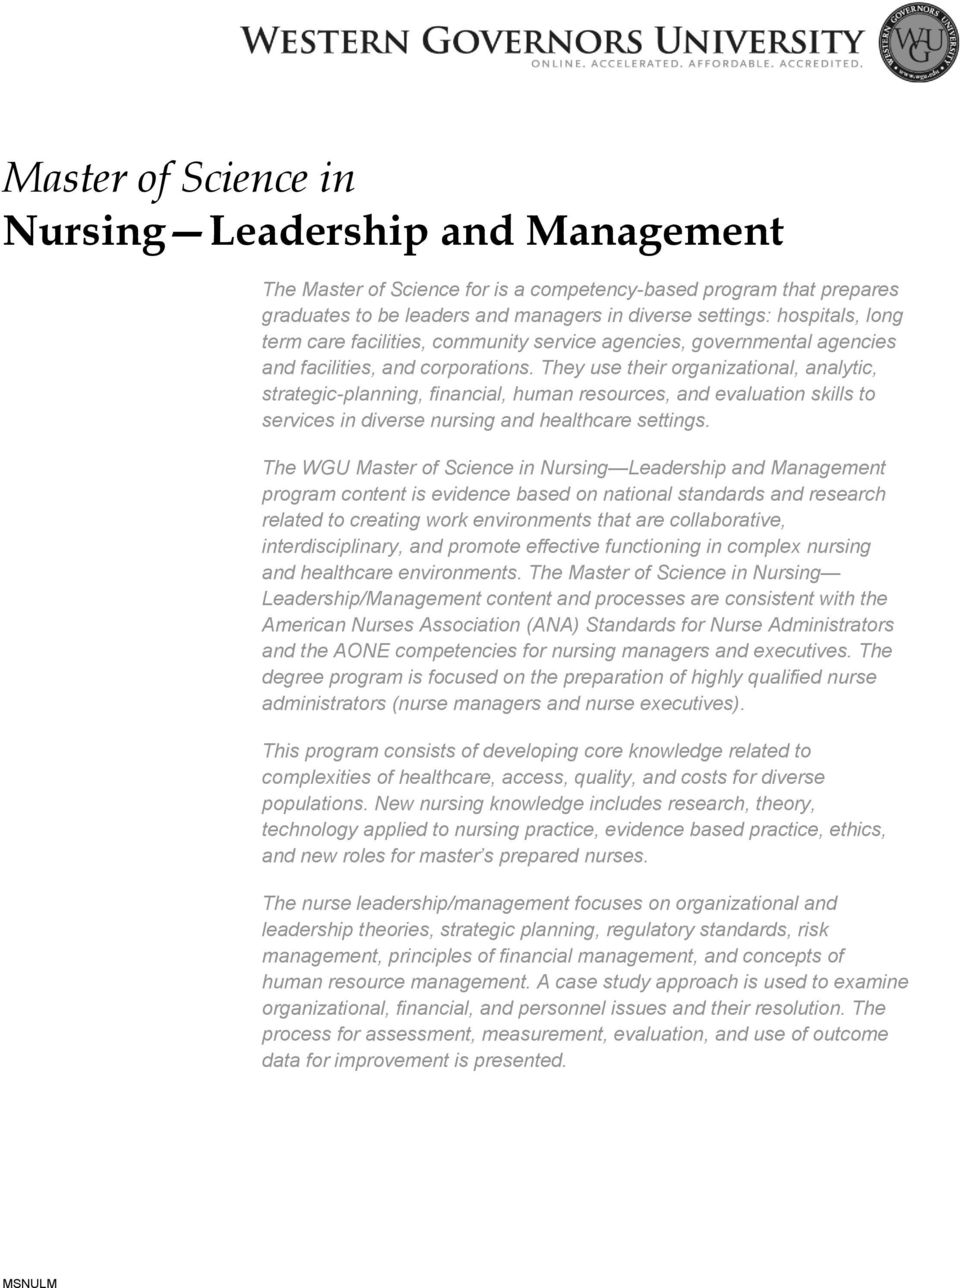 They use their organizational, analytic, strategic-planning, financial, human resources, and evaluation skills to services in diverse nursing and healthcare settings.